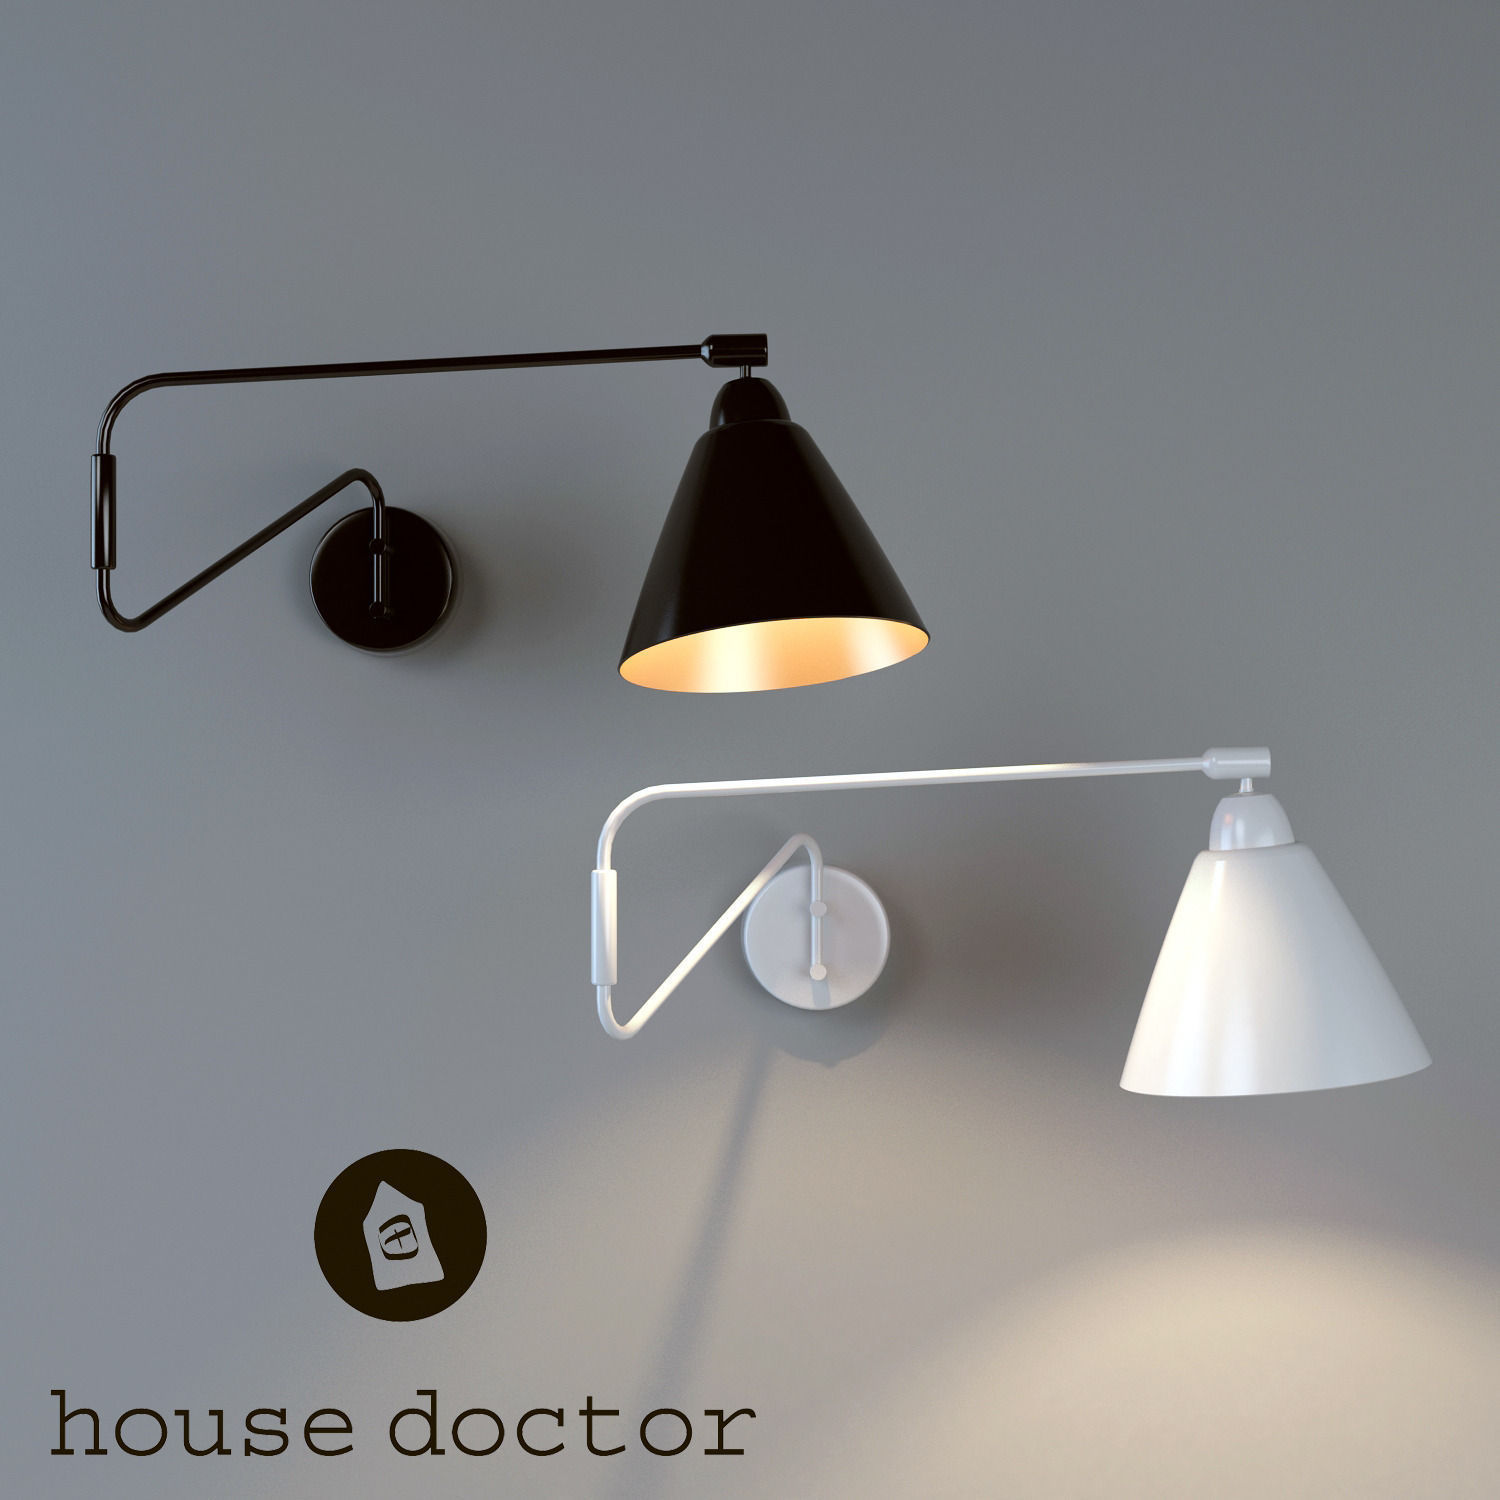 Wall Lamps 3d Model Free : Wall Lamp House Doctor 3D Model .max - CGTrader.com